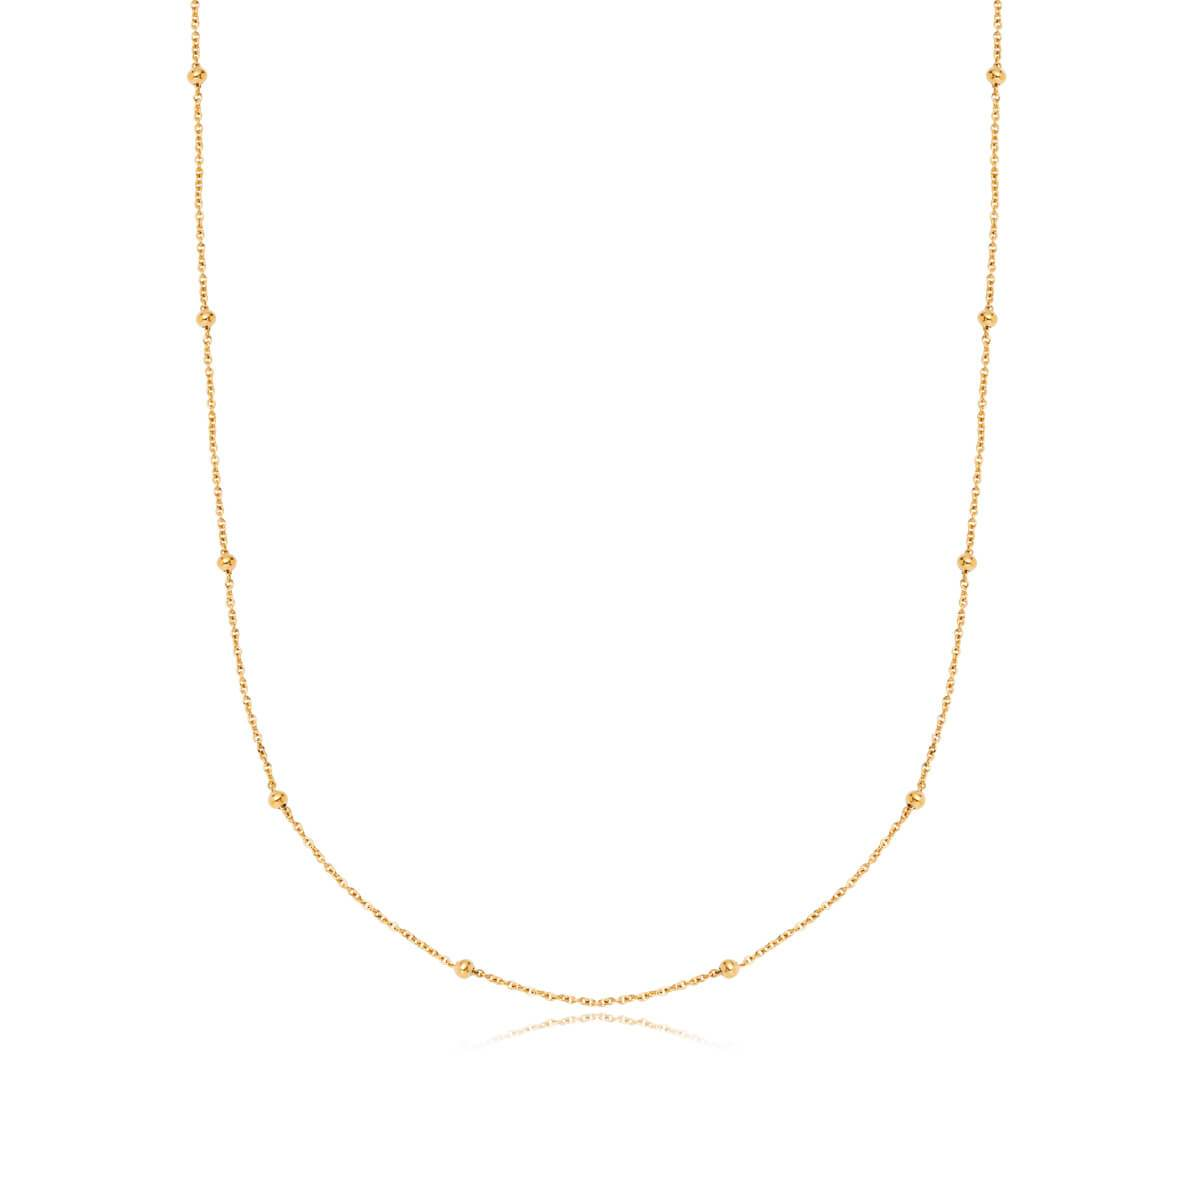 Selected Sphere Chain Necklace 16 in (Gold)